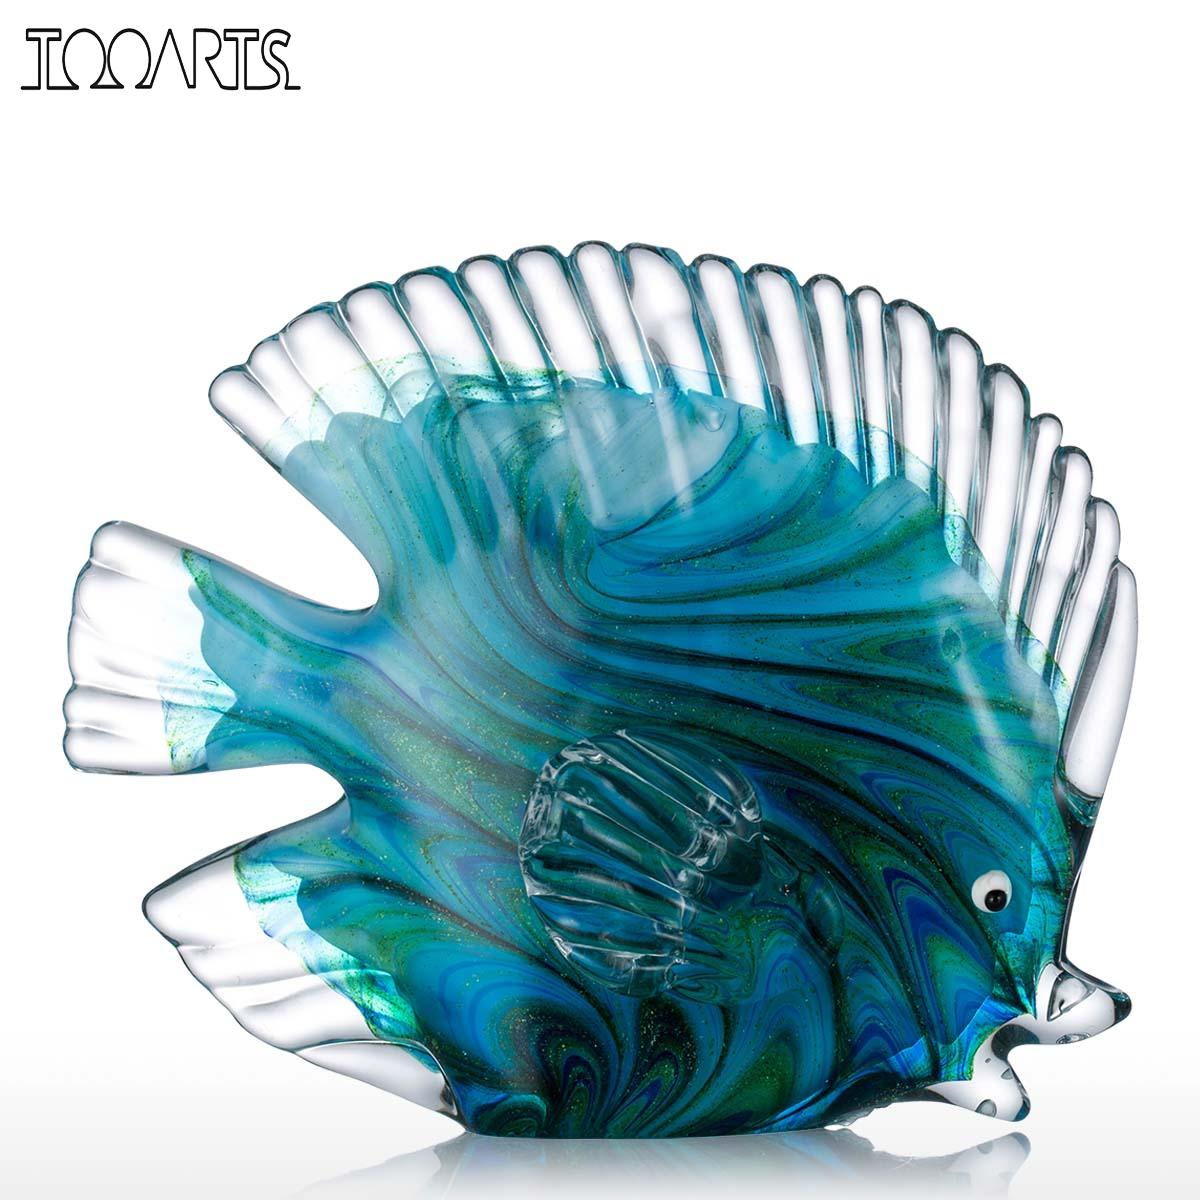 Tooarts Blue Glass Statuettes Tropical Fish Figurine Home Decor Art Animal Artificial Craft Gift For Home Decoration Accessories(China (Mainland))